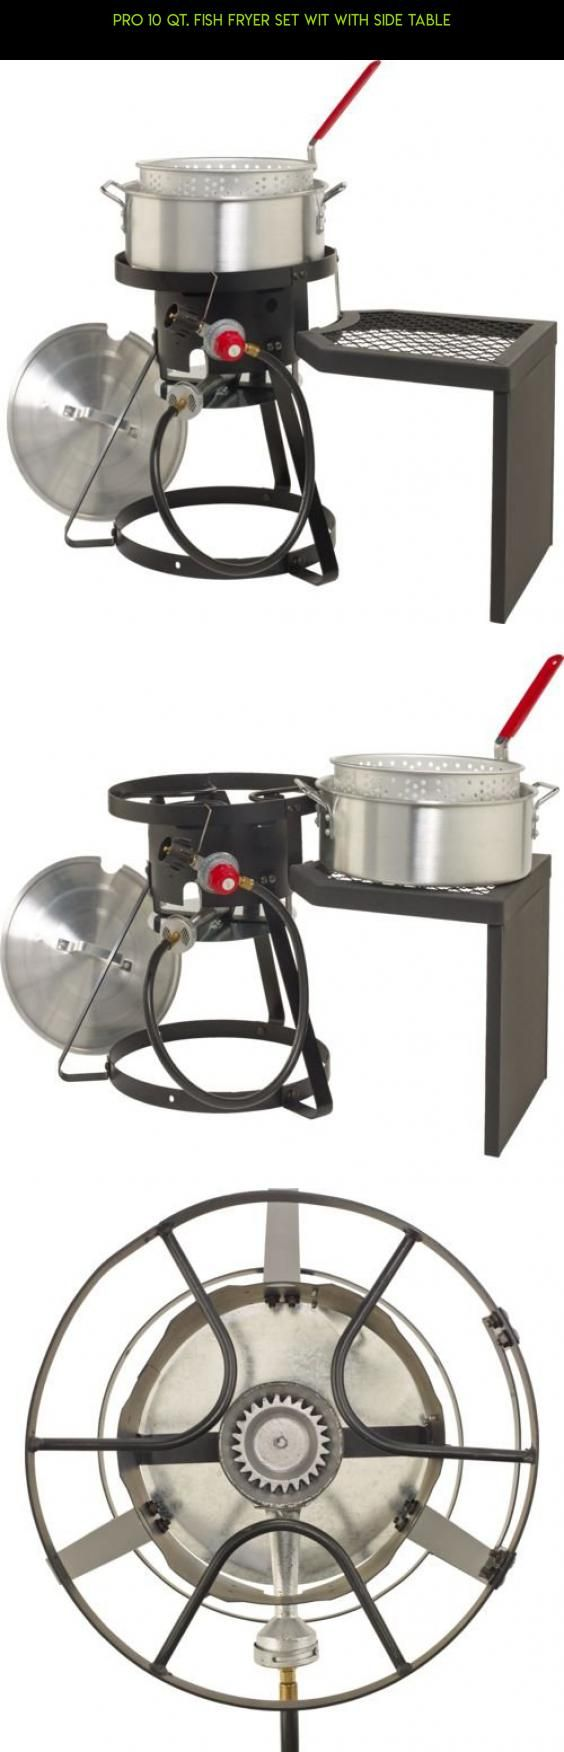 Pro 10 qt. Fish Fryer Set wit with Side Table #fpv #disc #gadgets #products #parts #outdoor #plans #tech #technology #drone #kit #racing #cooking #camera #shopping